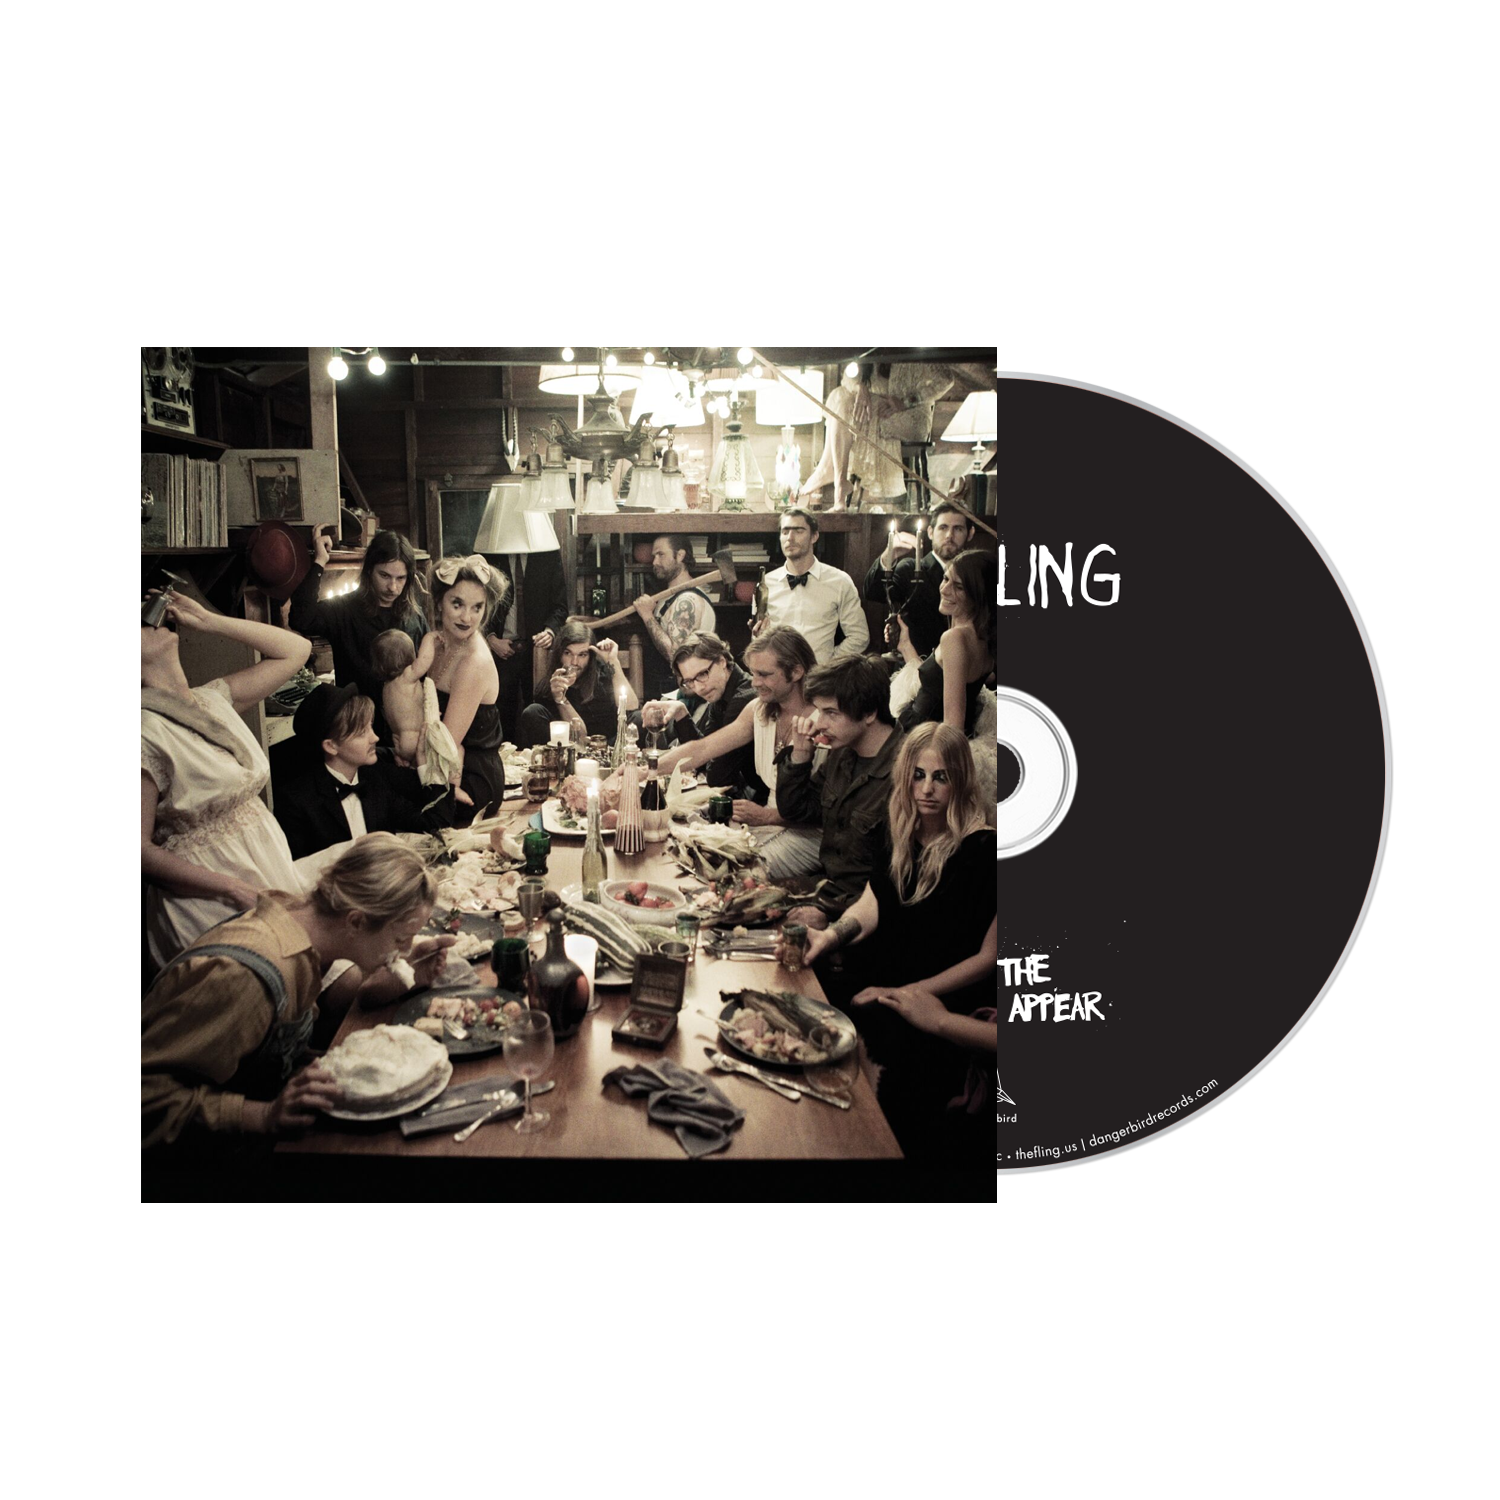 The Fling - When The Madhouses Appear - CD